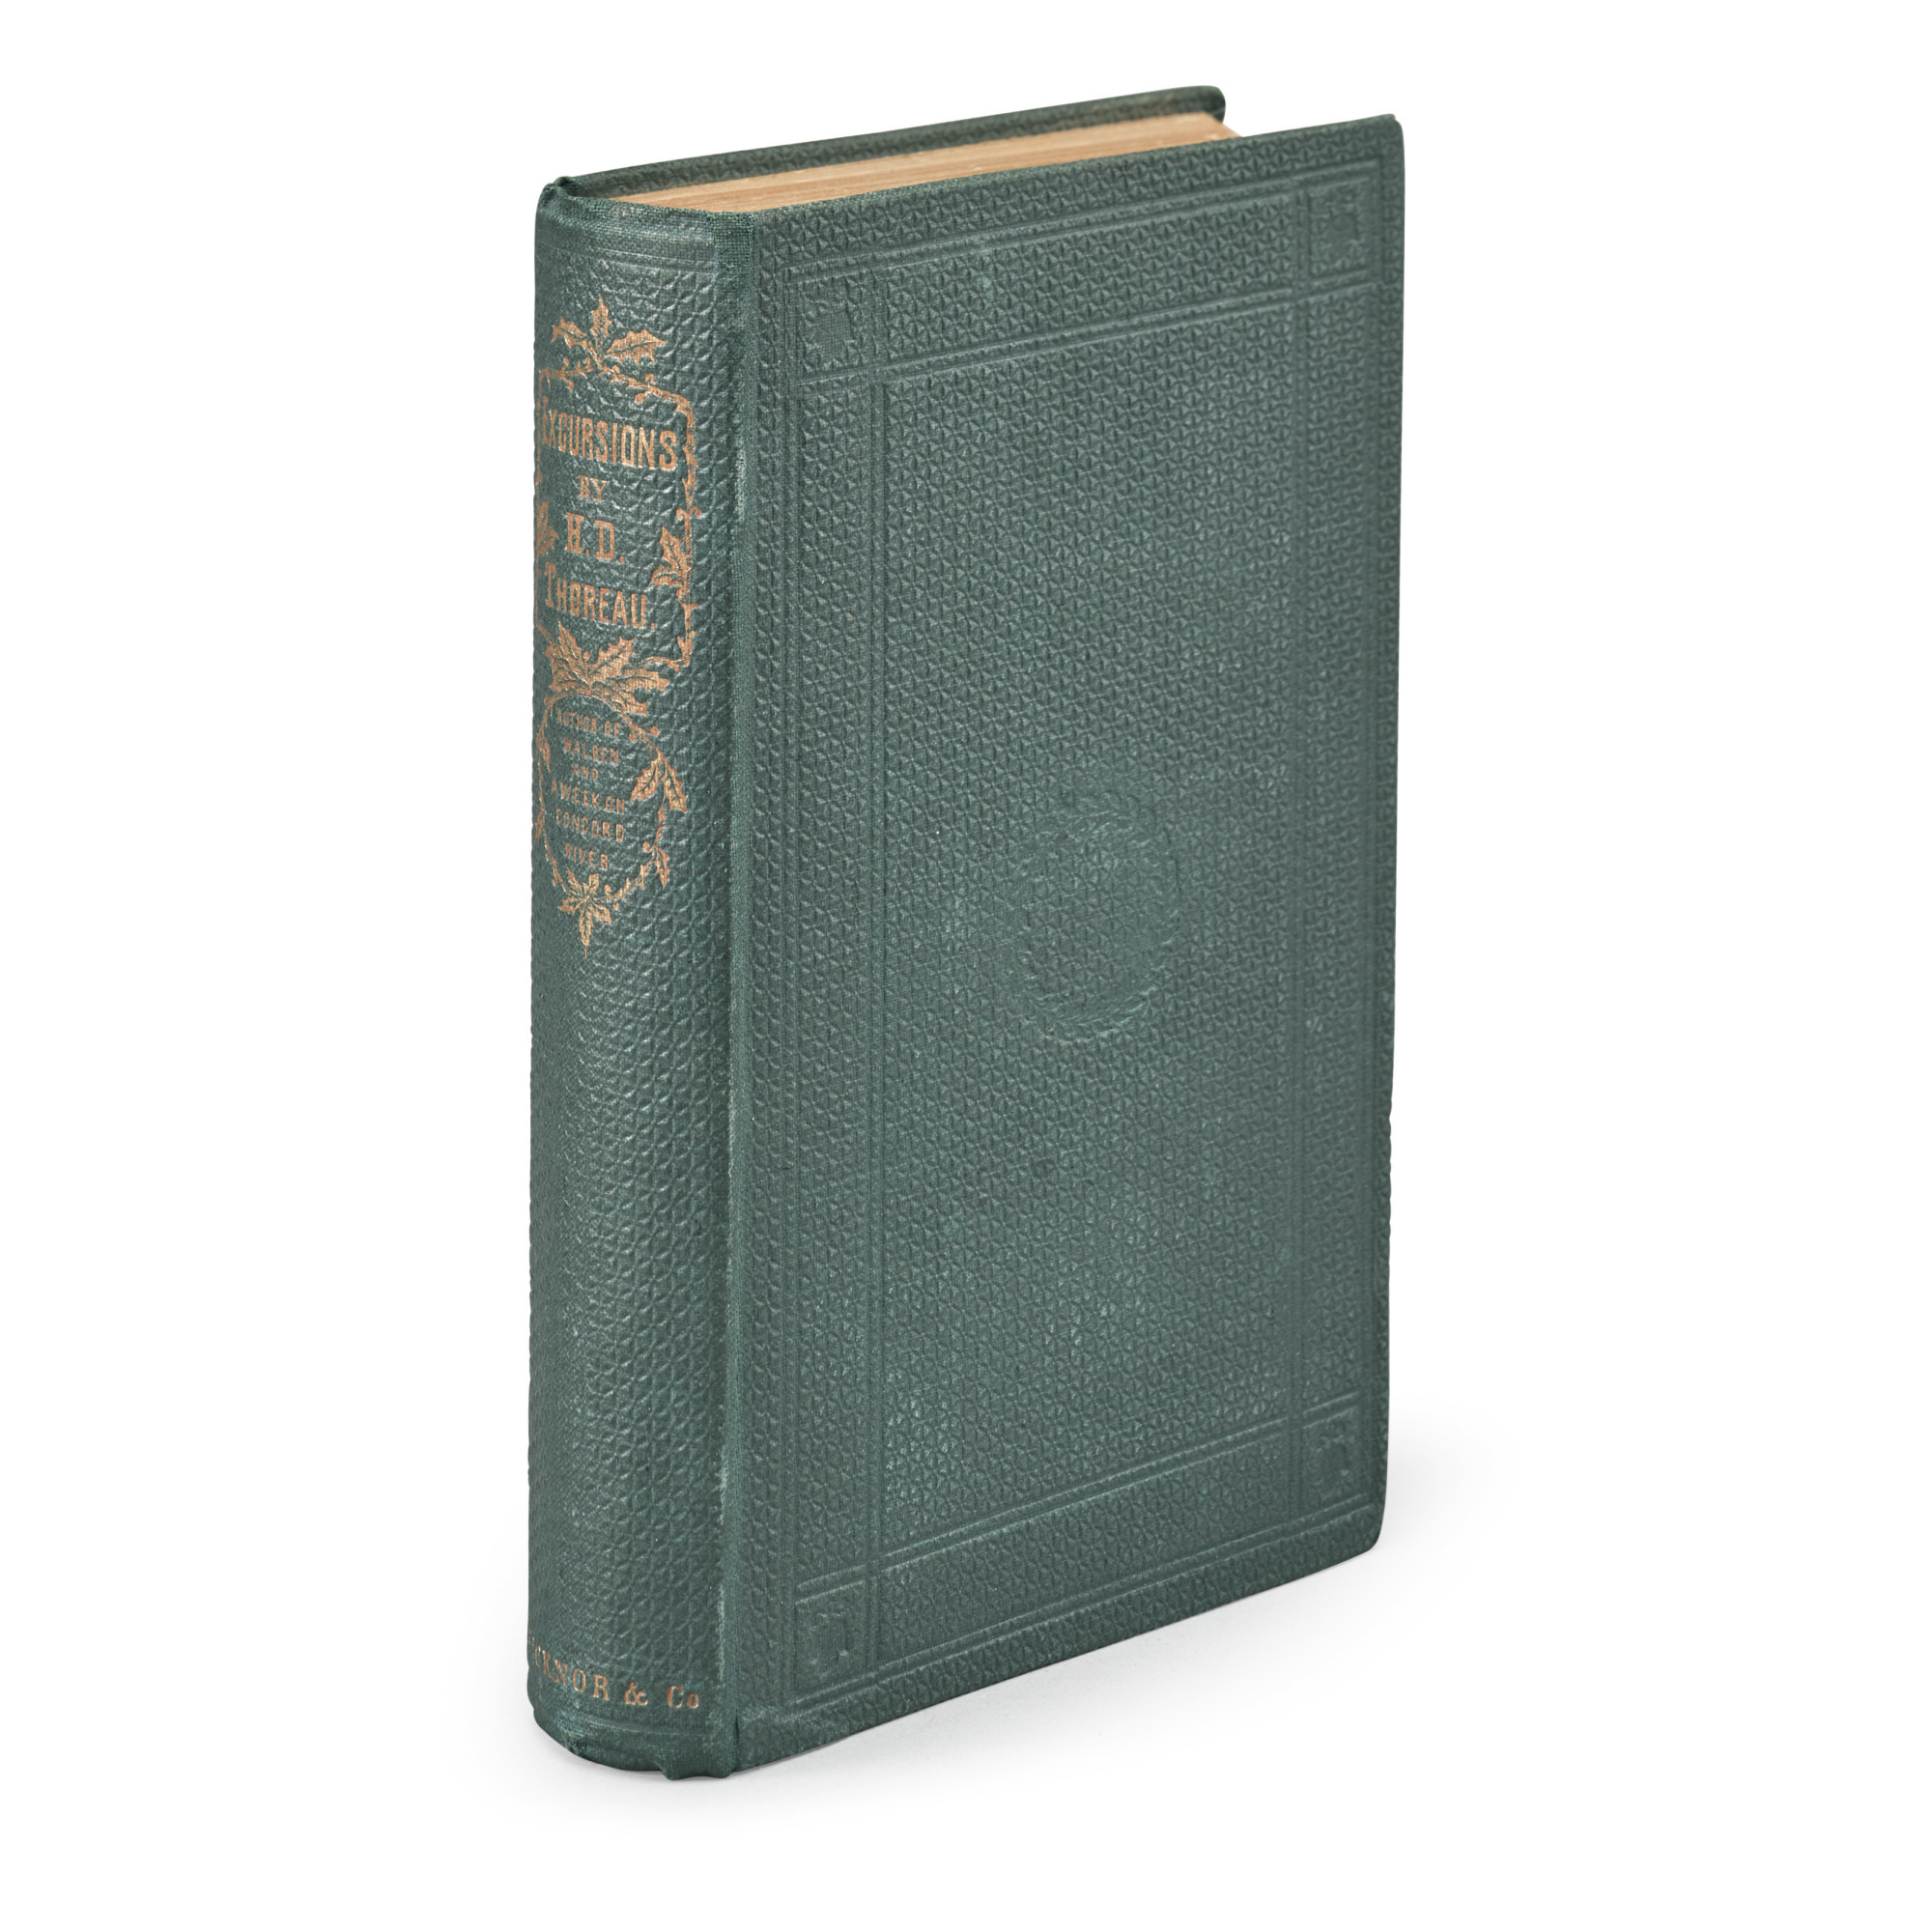 THOREAU, HENRY DAVID | Excursions. Boston: Ticknor and Fields, 1863